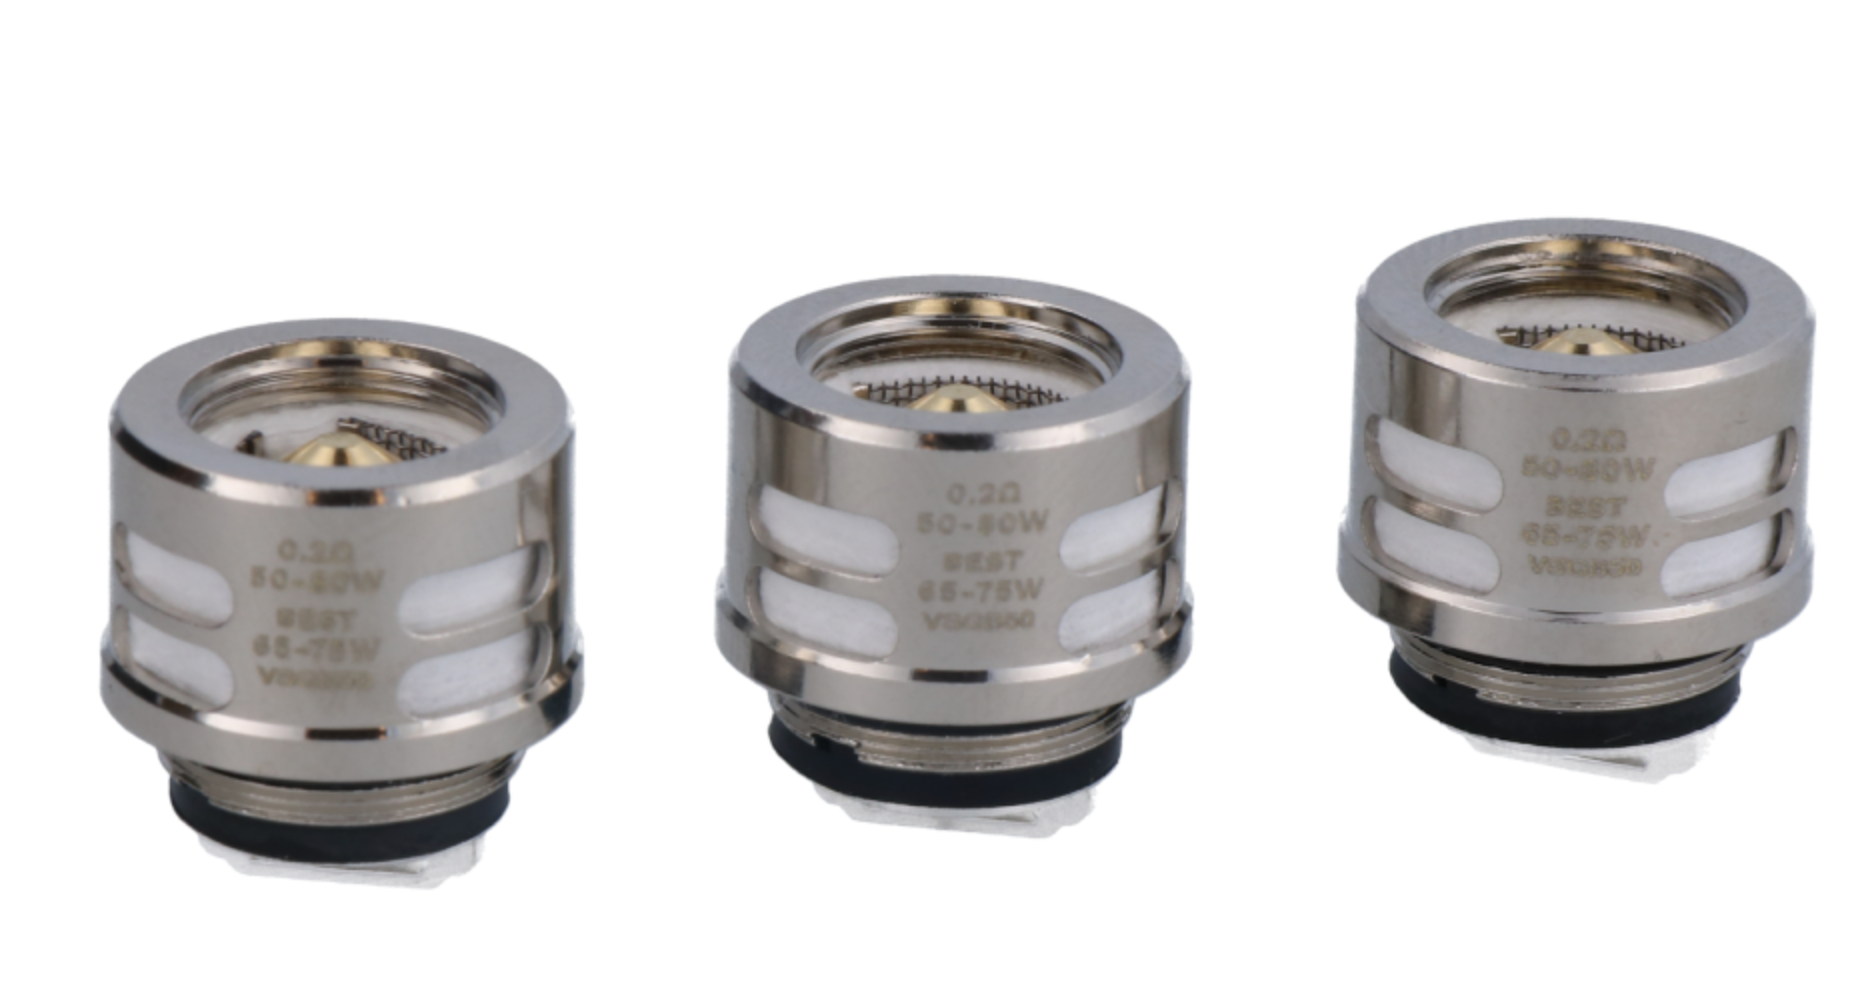 Order the Vaporesso QF SKRR Mesh Coils today from official